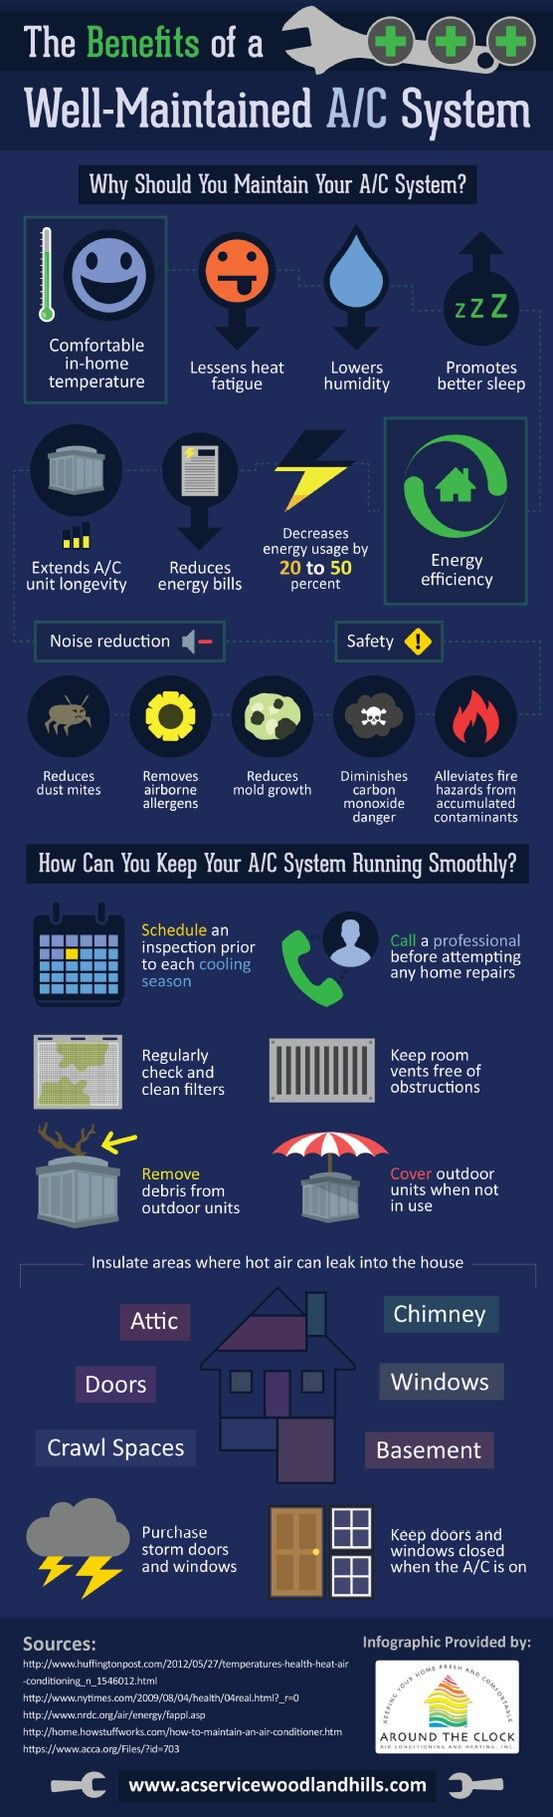 Did you know that you can reduce your home energy usage by up to 50 percent just by getting your air conditioner checked regularly? This infographic from an air conditioning repair company in Woodland Hills shows you how.